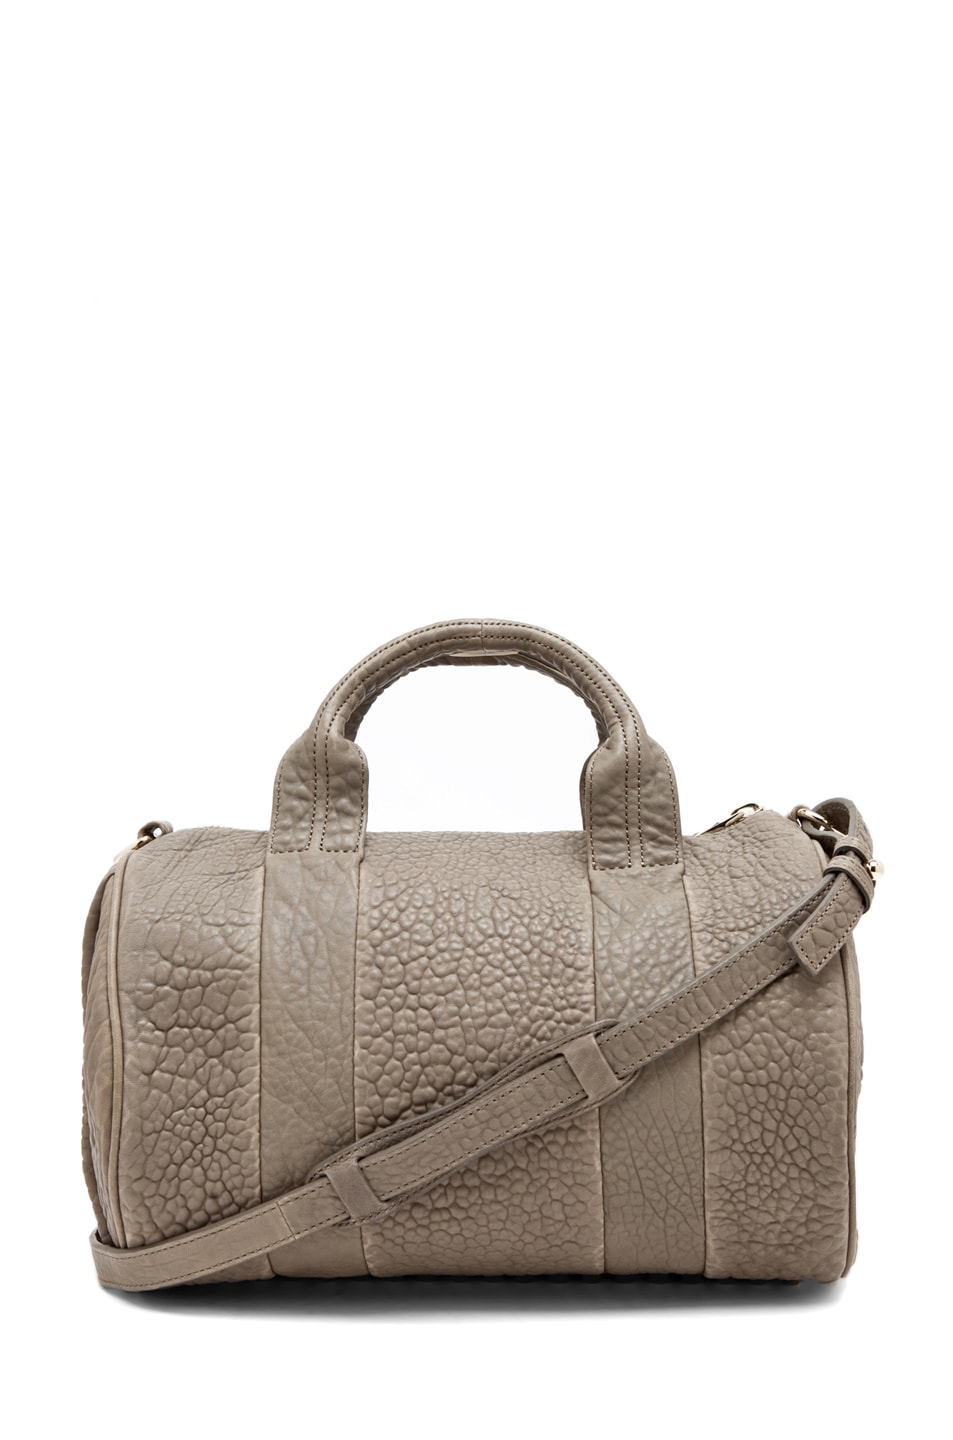 Image 1 of Alexander Wang Rocco Satchel in Granite